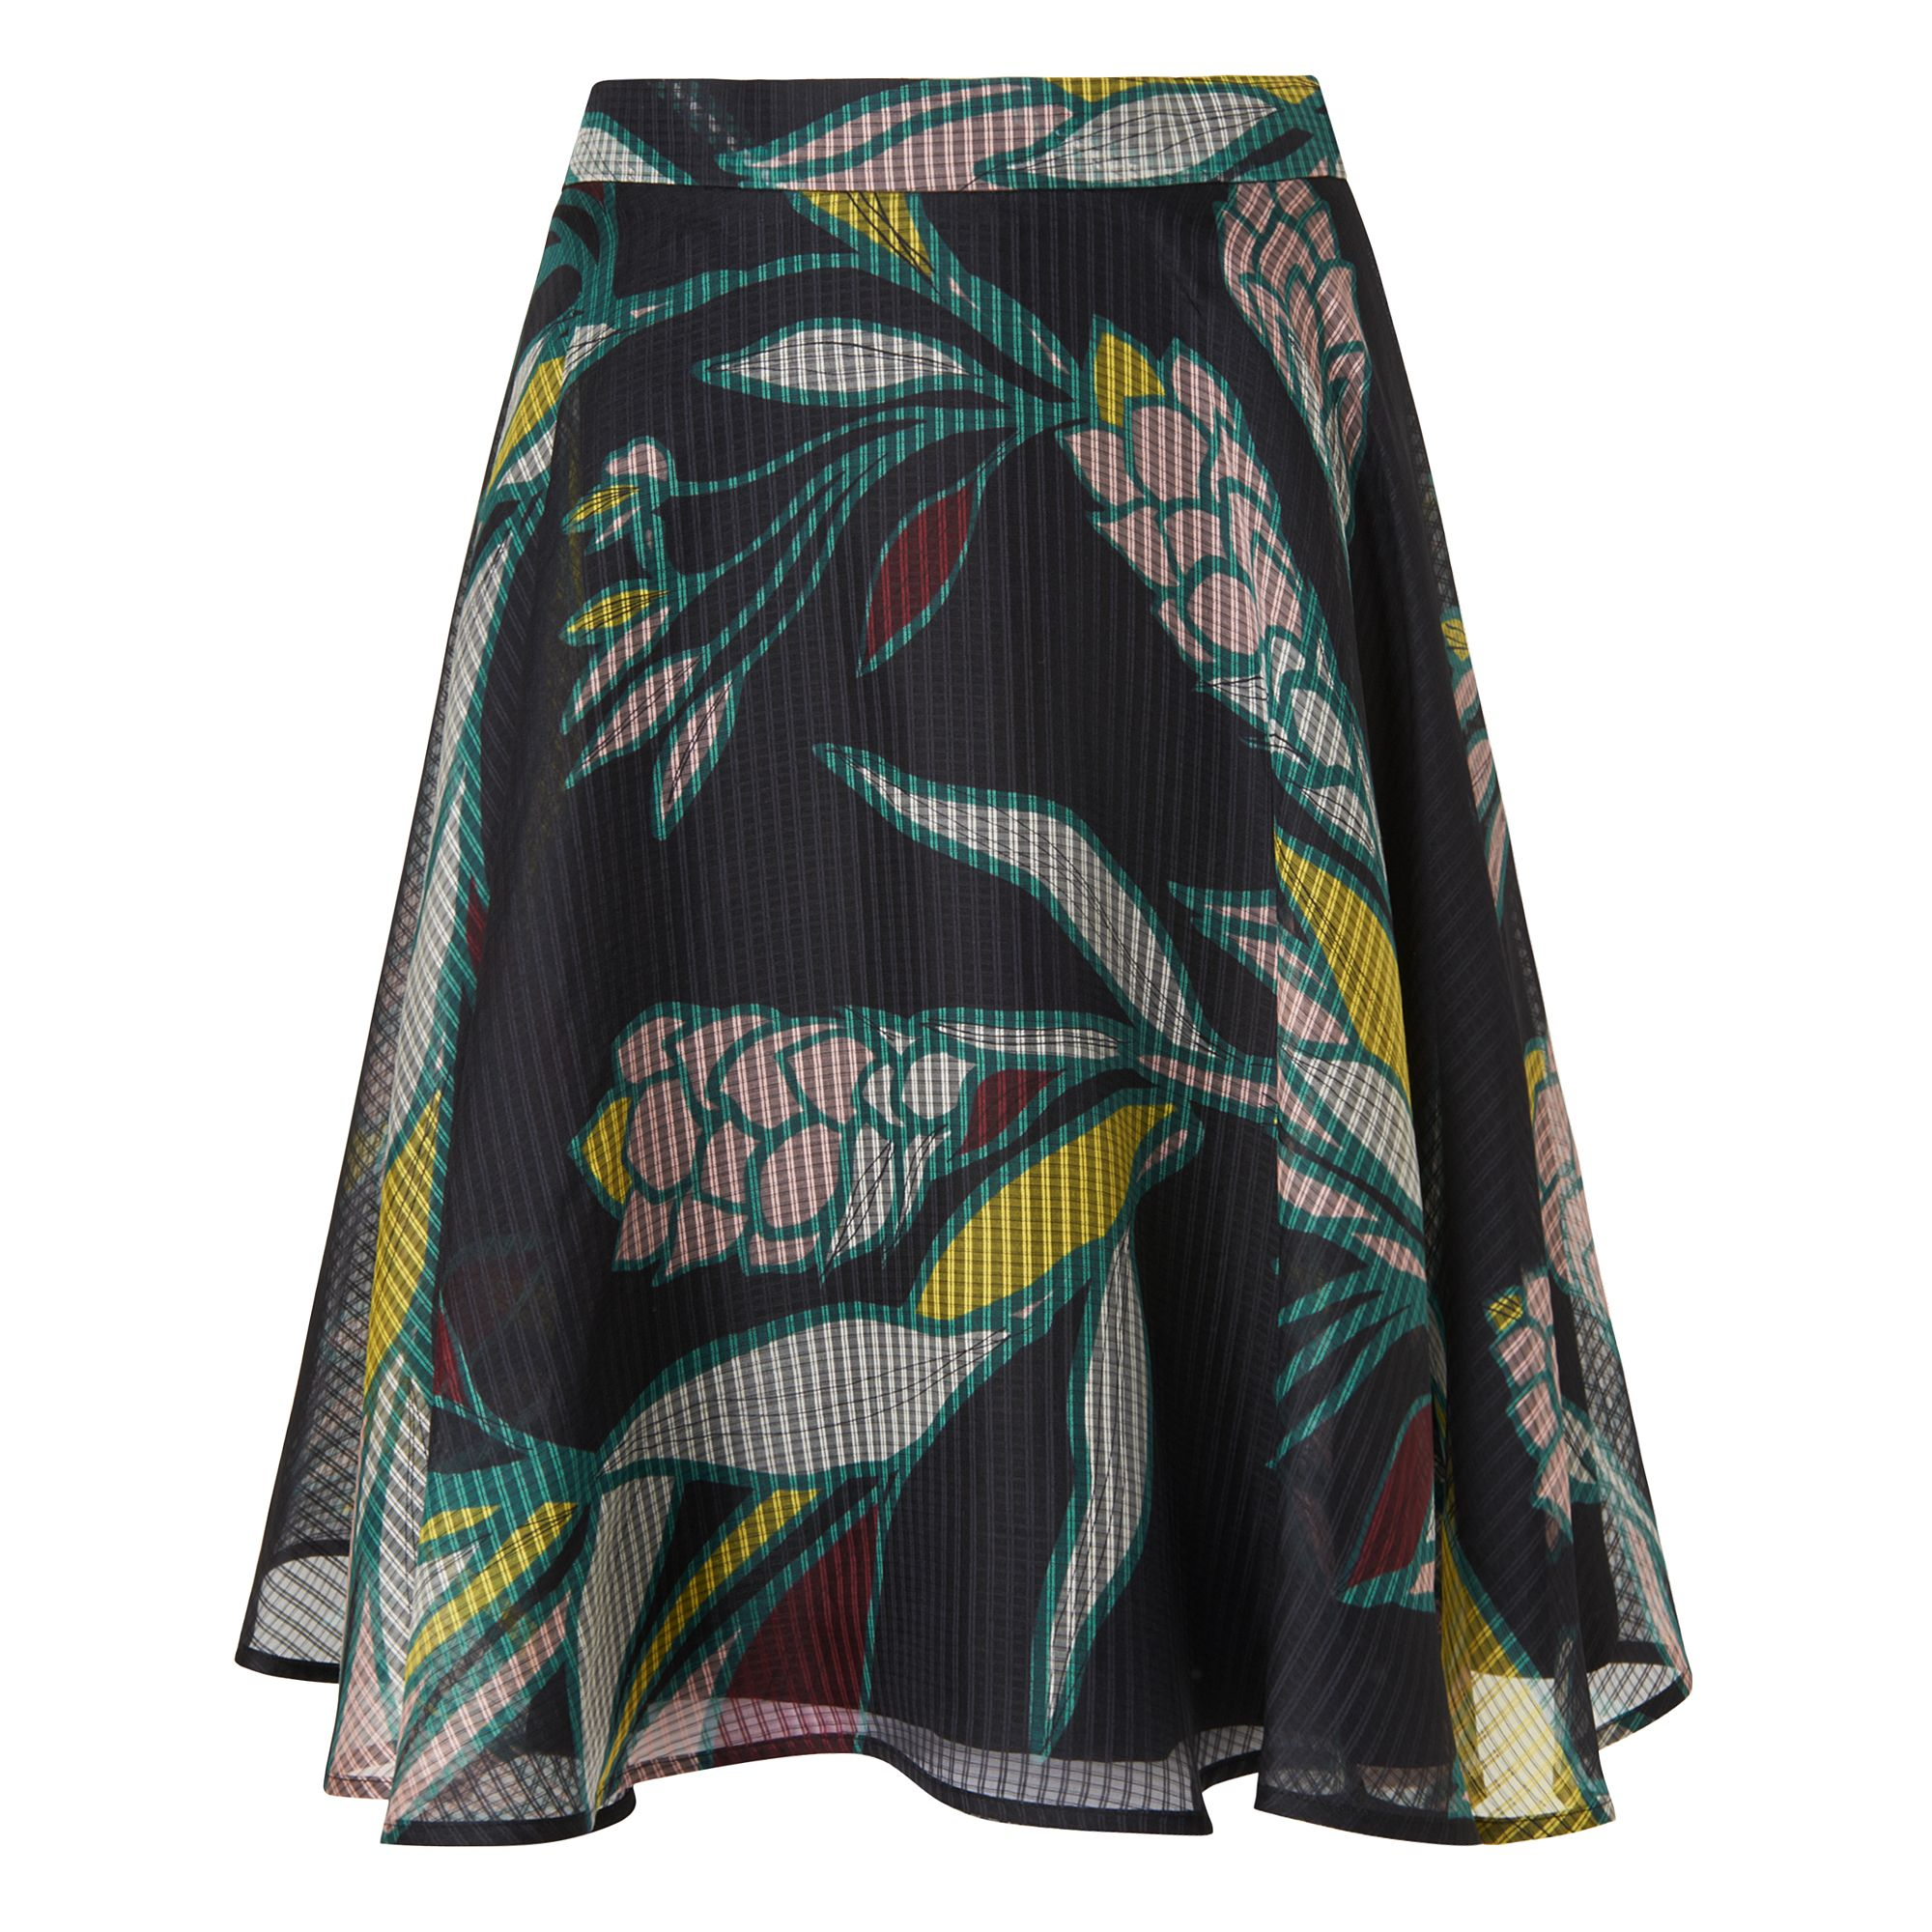 L.K. Bennett Kalia Geo Flowers Skirt, Multi-Coloured